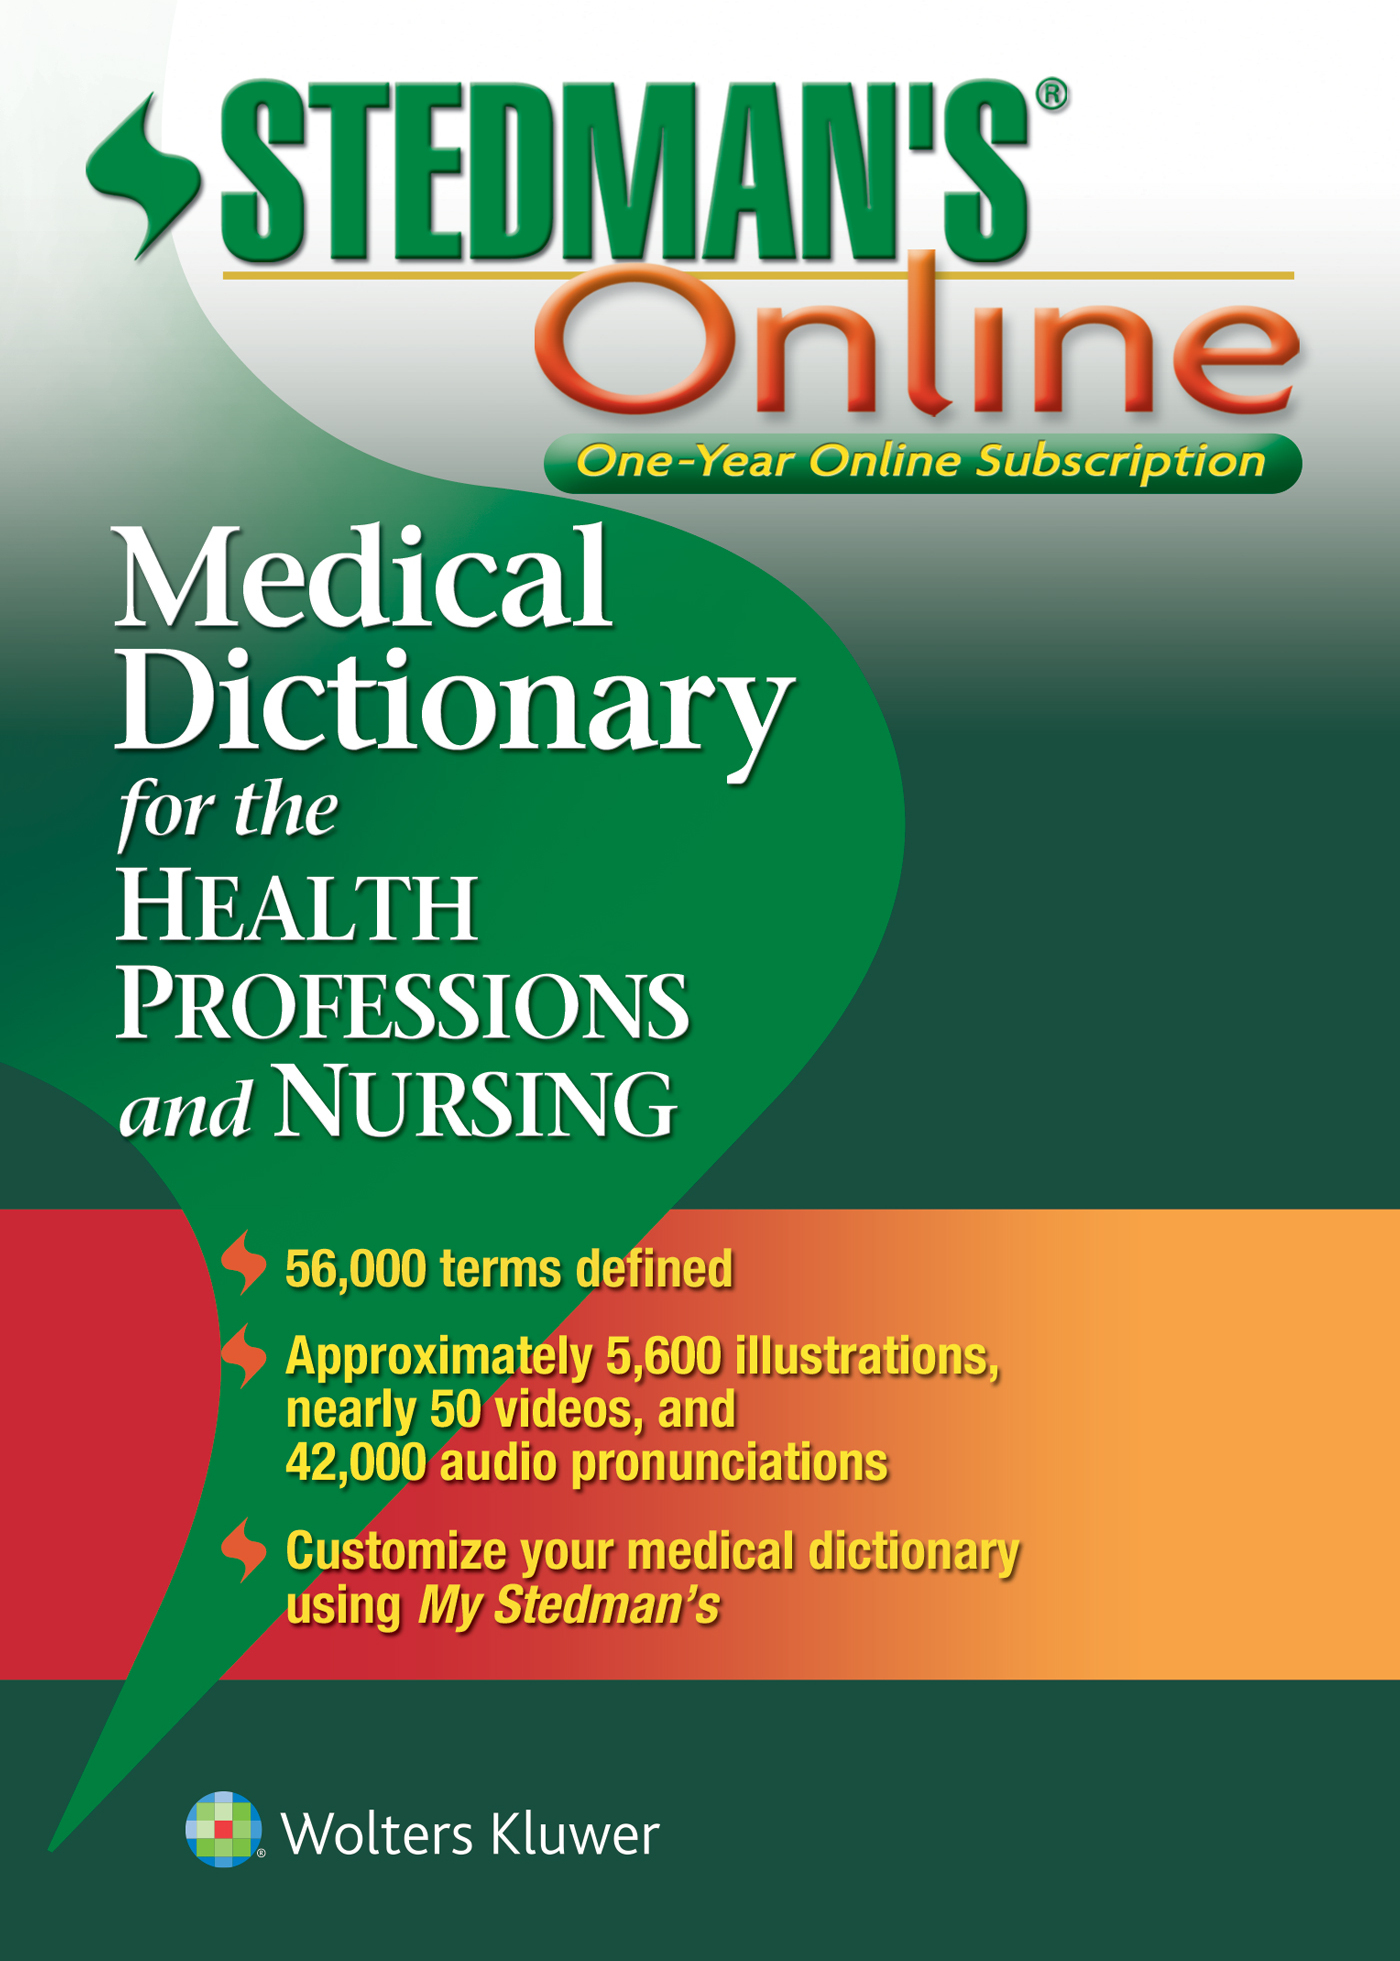 Stedman's Medical Dictionary for the Health Professions and Nursing book cover